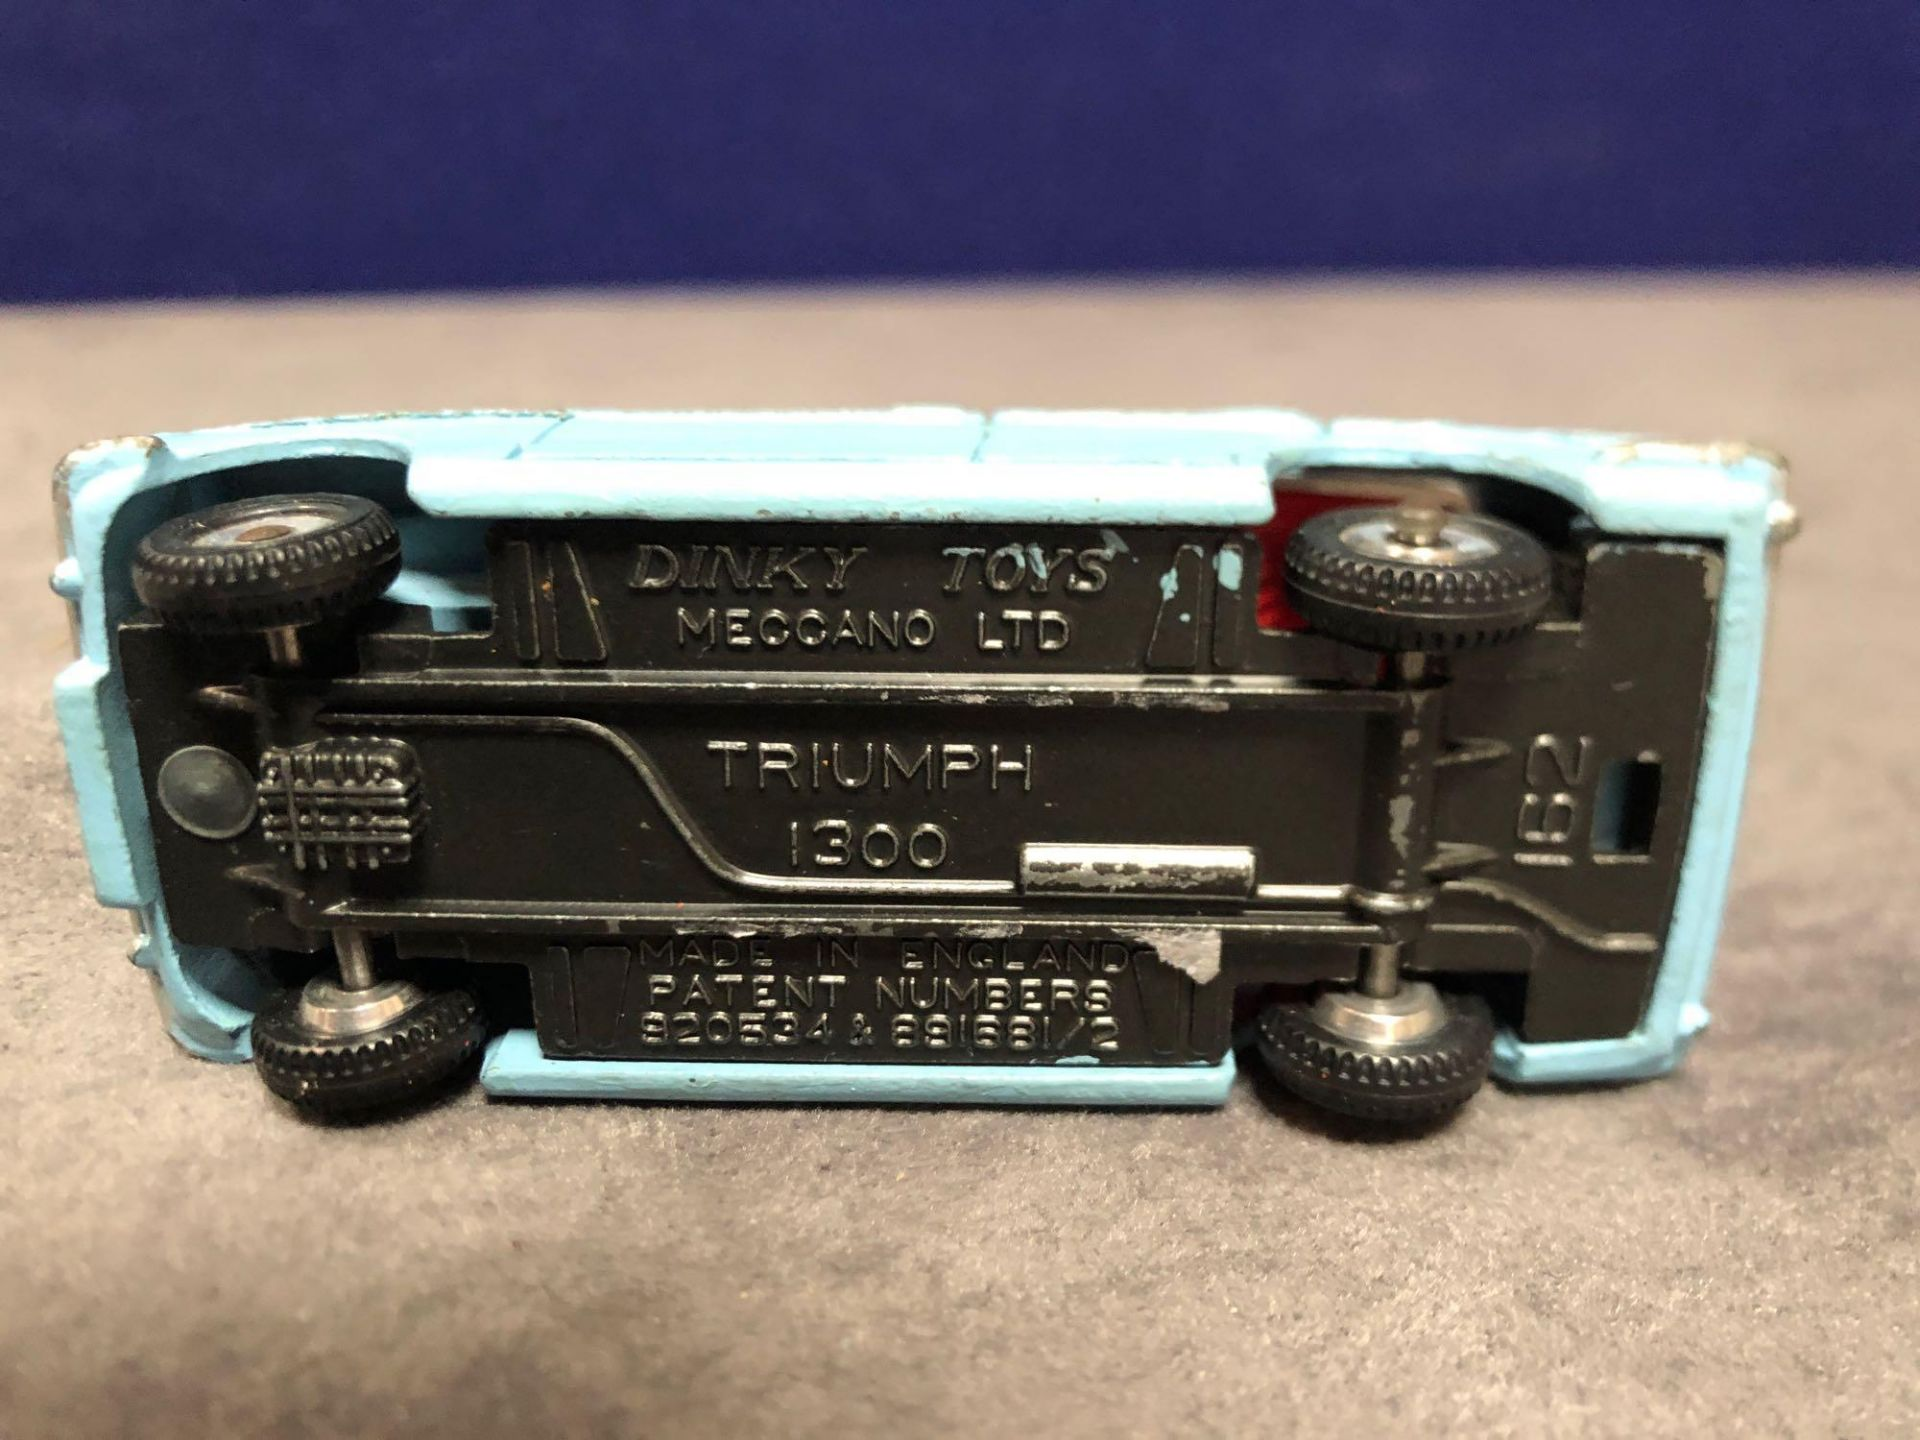 Dinky #162 Triumph 1300 Blue - Red Interior, Spun Hubs And Number Plates 1966 - 1969 Unboxed very - Image 4 of 4